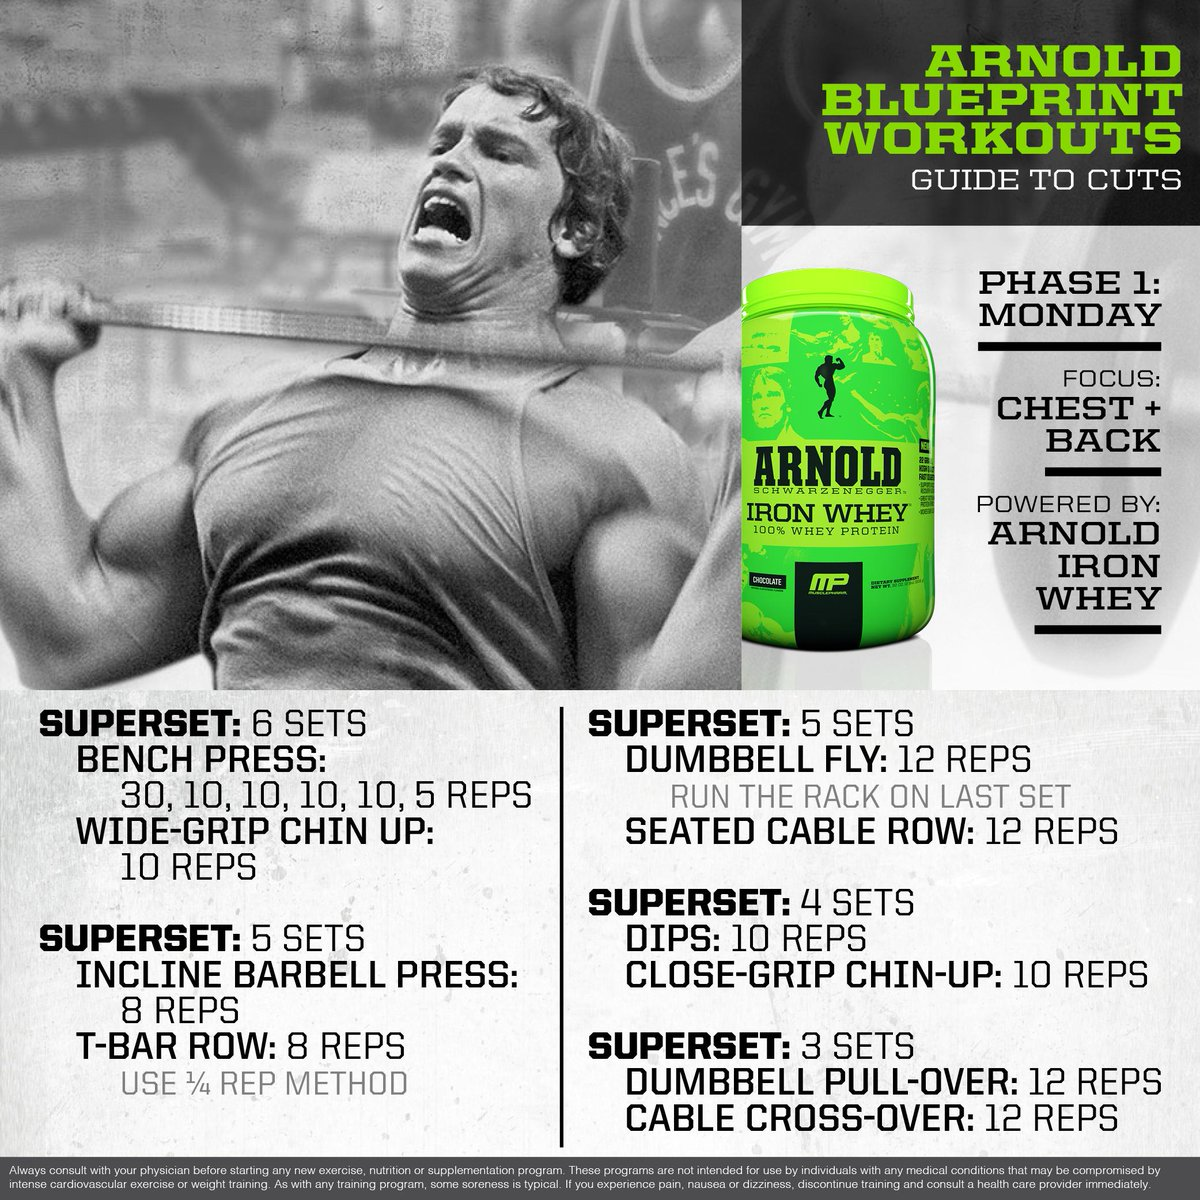 Musclepharm on twitter mp workout of the day arnold arnold schwarzenegger blueprint to cut chest and back workout powered by ironwhey httptudd1uvcjdv malvernweather Choice Image